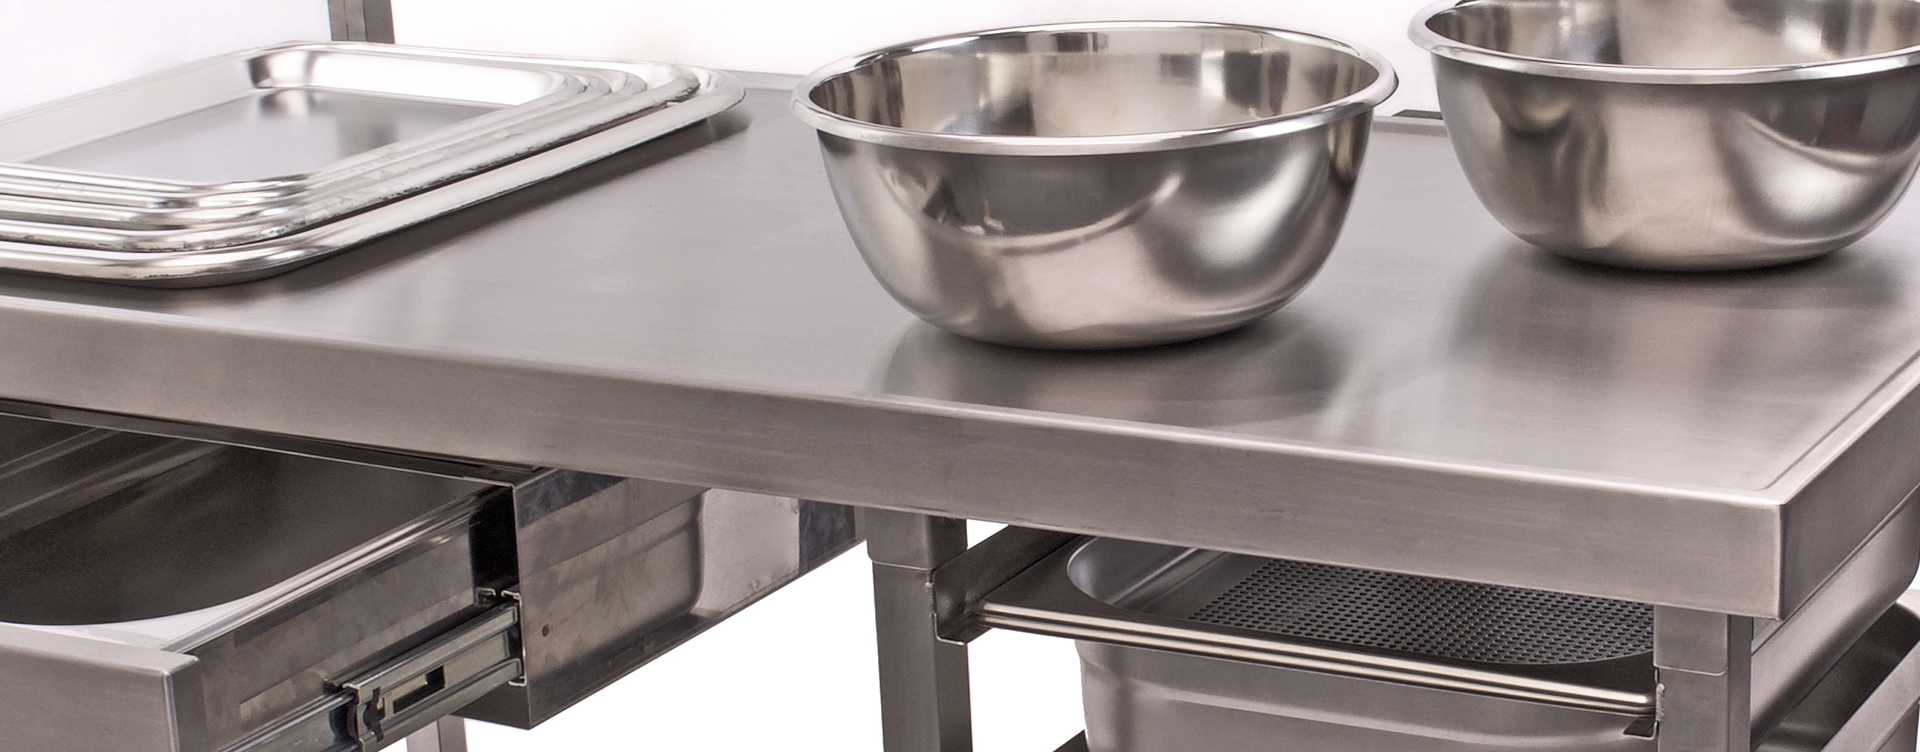 Stainless Steel Bows, Butcher Trays, Stainless Steel Draws and Tables